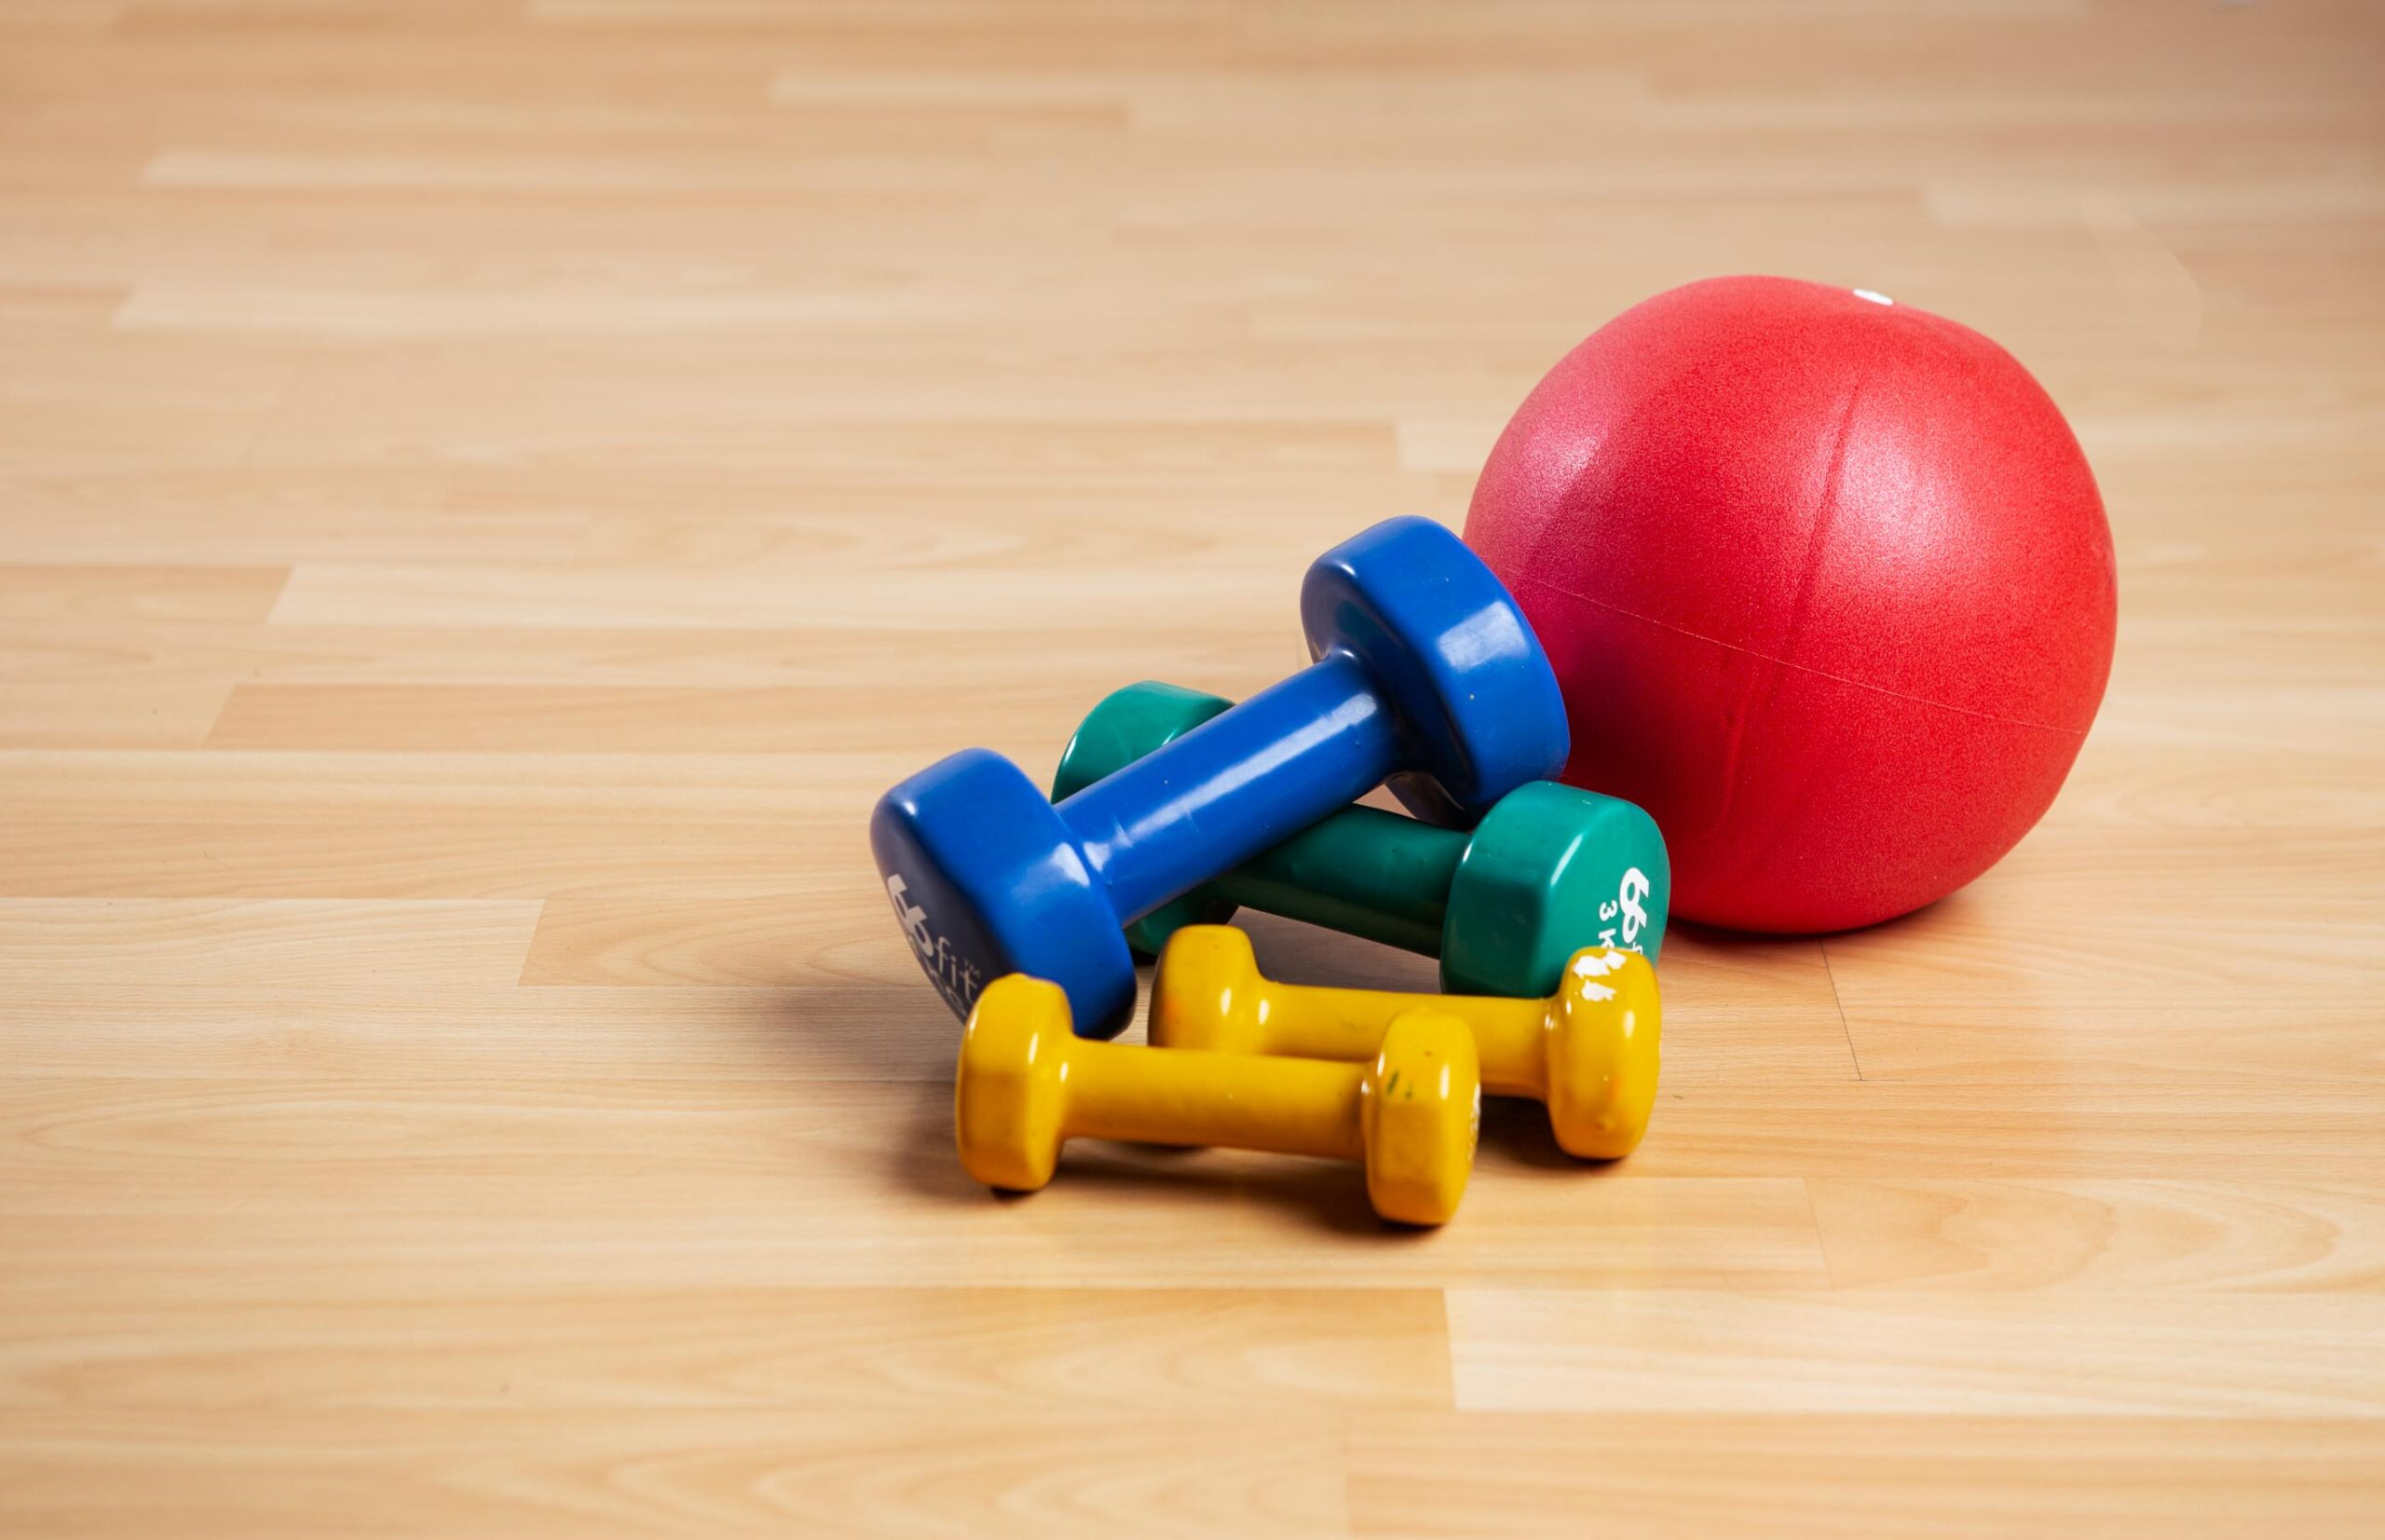 Dumbbells and Ball Photo